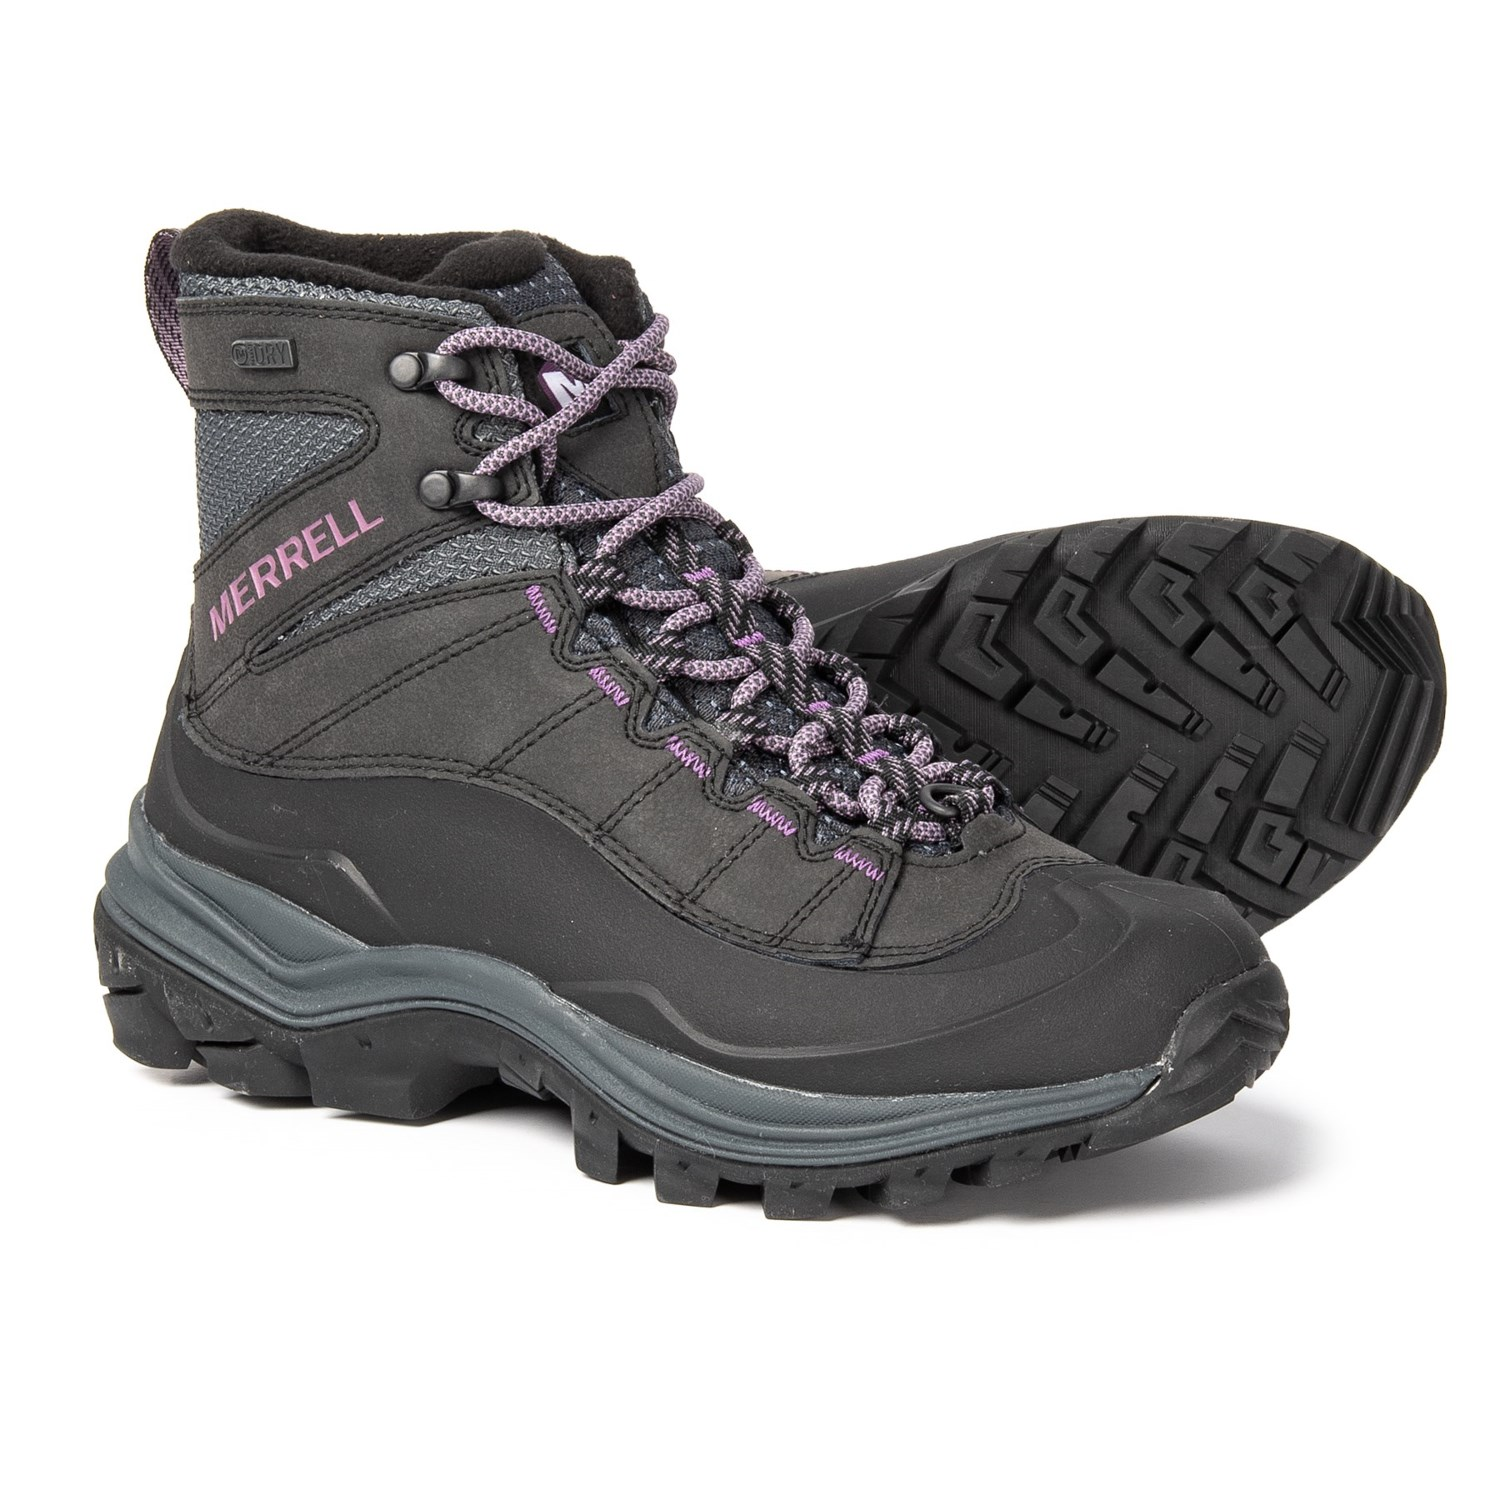 7f0c3ab9 Merrell Thermo Chill Mid Shell Hiking Boots (For Women) - Save 45%